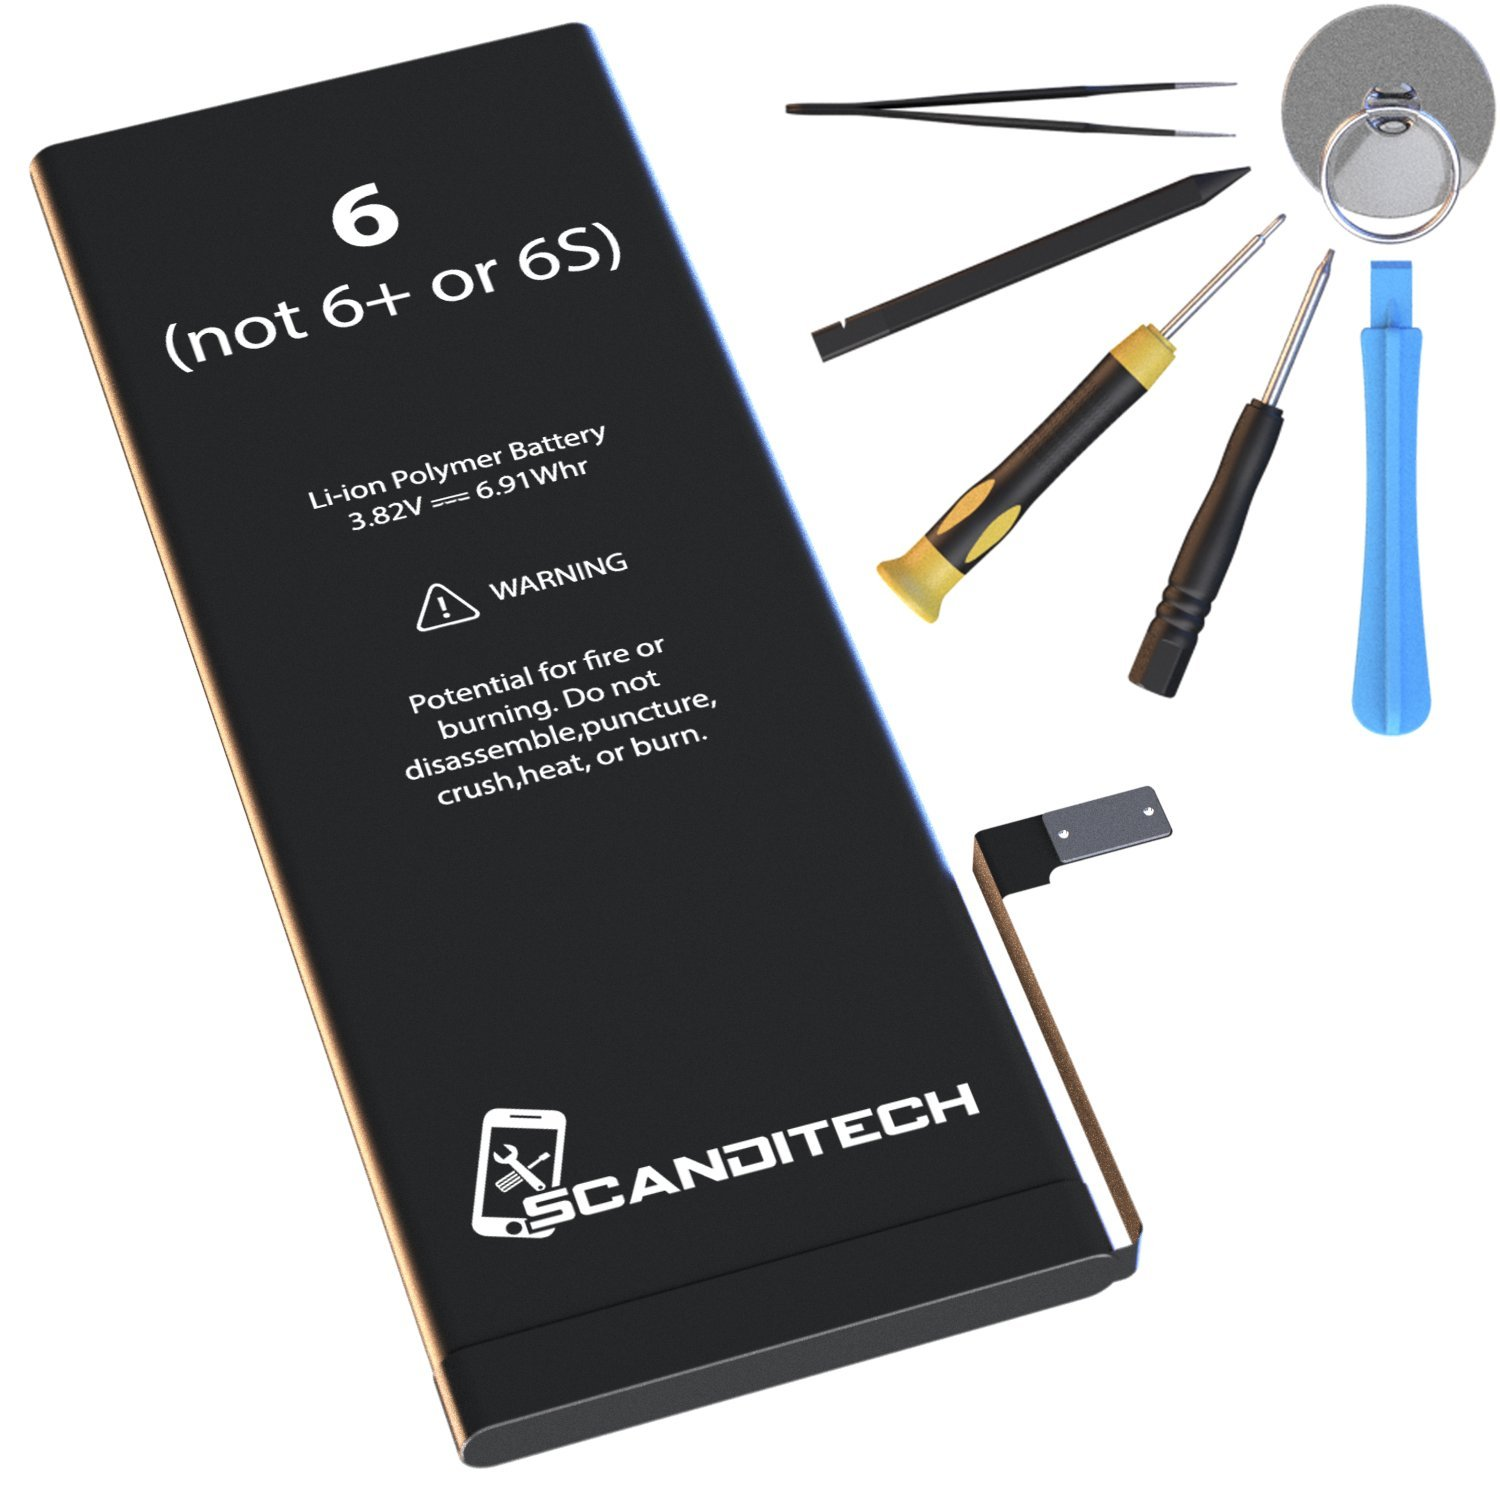 ScandiTech Battery Model iP6 (not 6+ or 6S) - Replacement Kit with Tools, Adhesive & Instructions - New 1810 mAh 0 Cycle Battery - Repair Your Phone in 15 min - 1 Year Warr by SCANDITECH